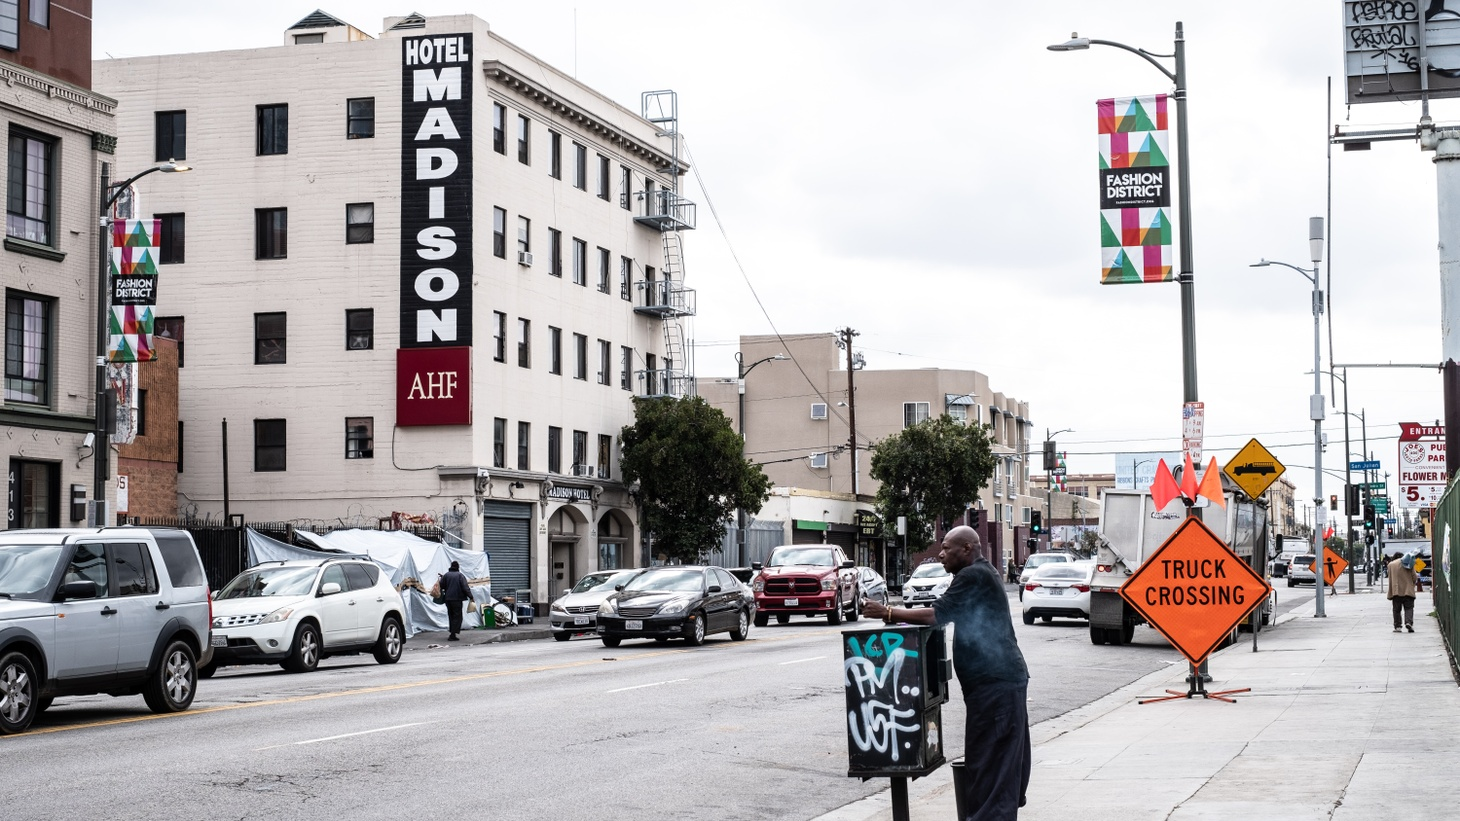 The Madison Hotel is a single-room occupancy hotel near Skid Row in downtown LA.